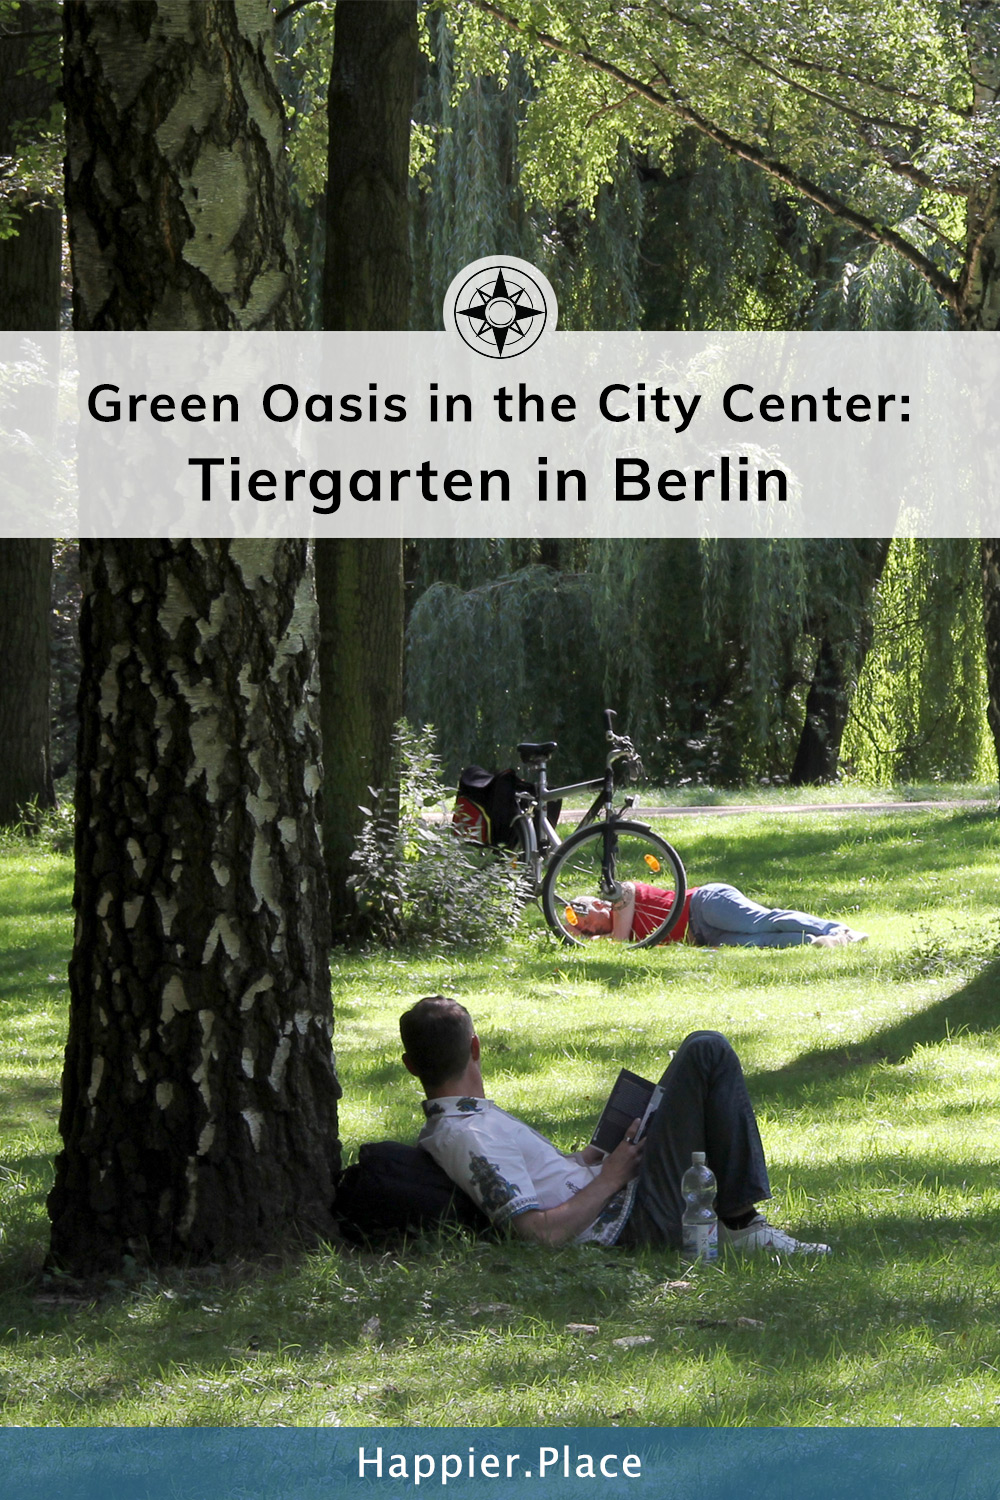 Green Oasis in the City Center: Tiergarten Park in Berlin